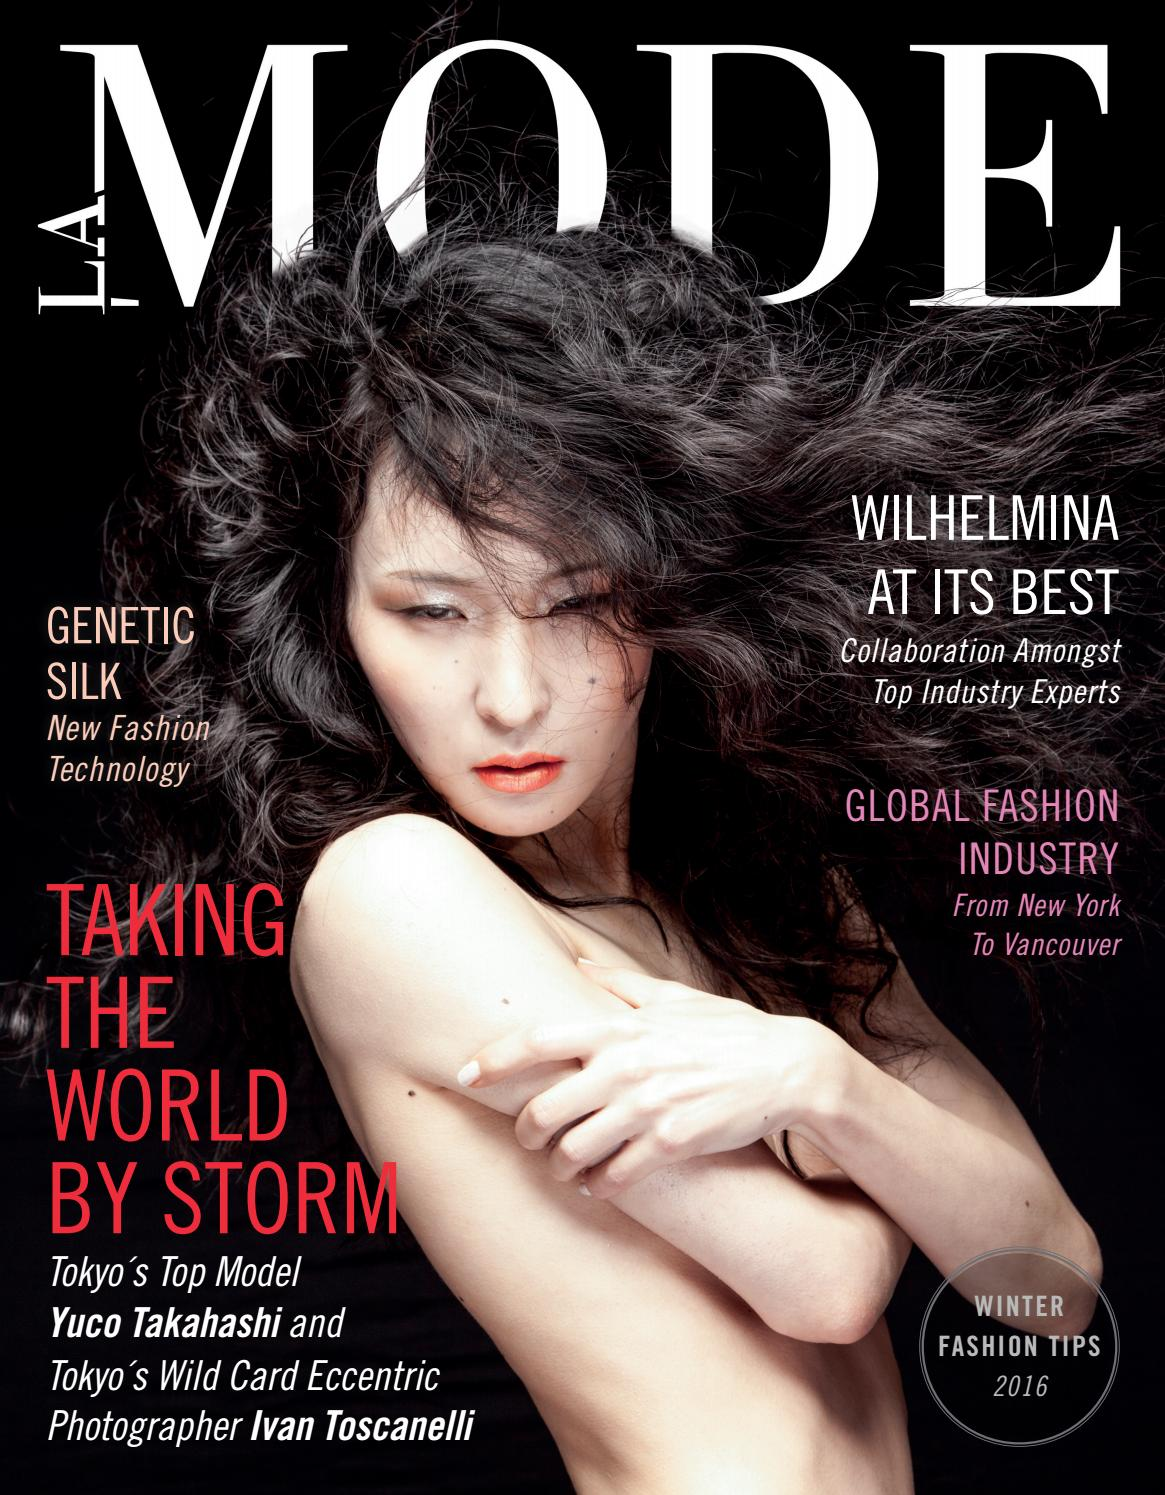 MODE (stylized MODE) was a fashion magazine aimed towards plus-size women which launched in the spring of The magazine was praised for targeting the plus-size consumer with a Vogue-like fashion smashingprogrammsrj.tky: Freedom Communications.